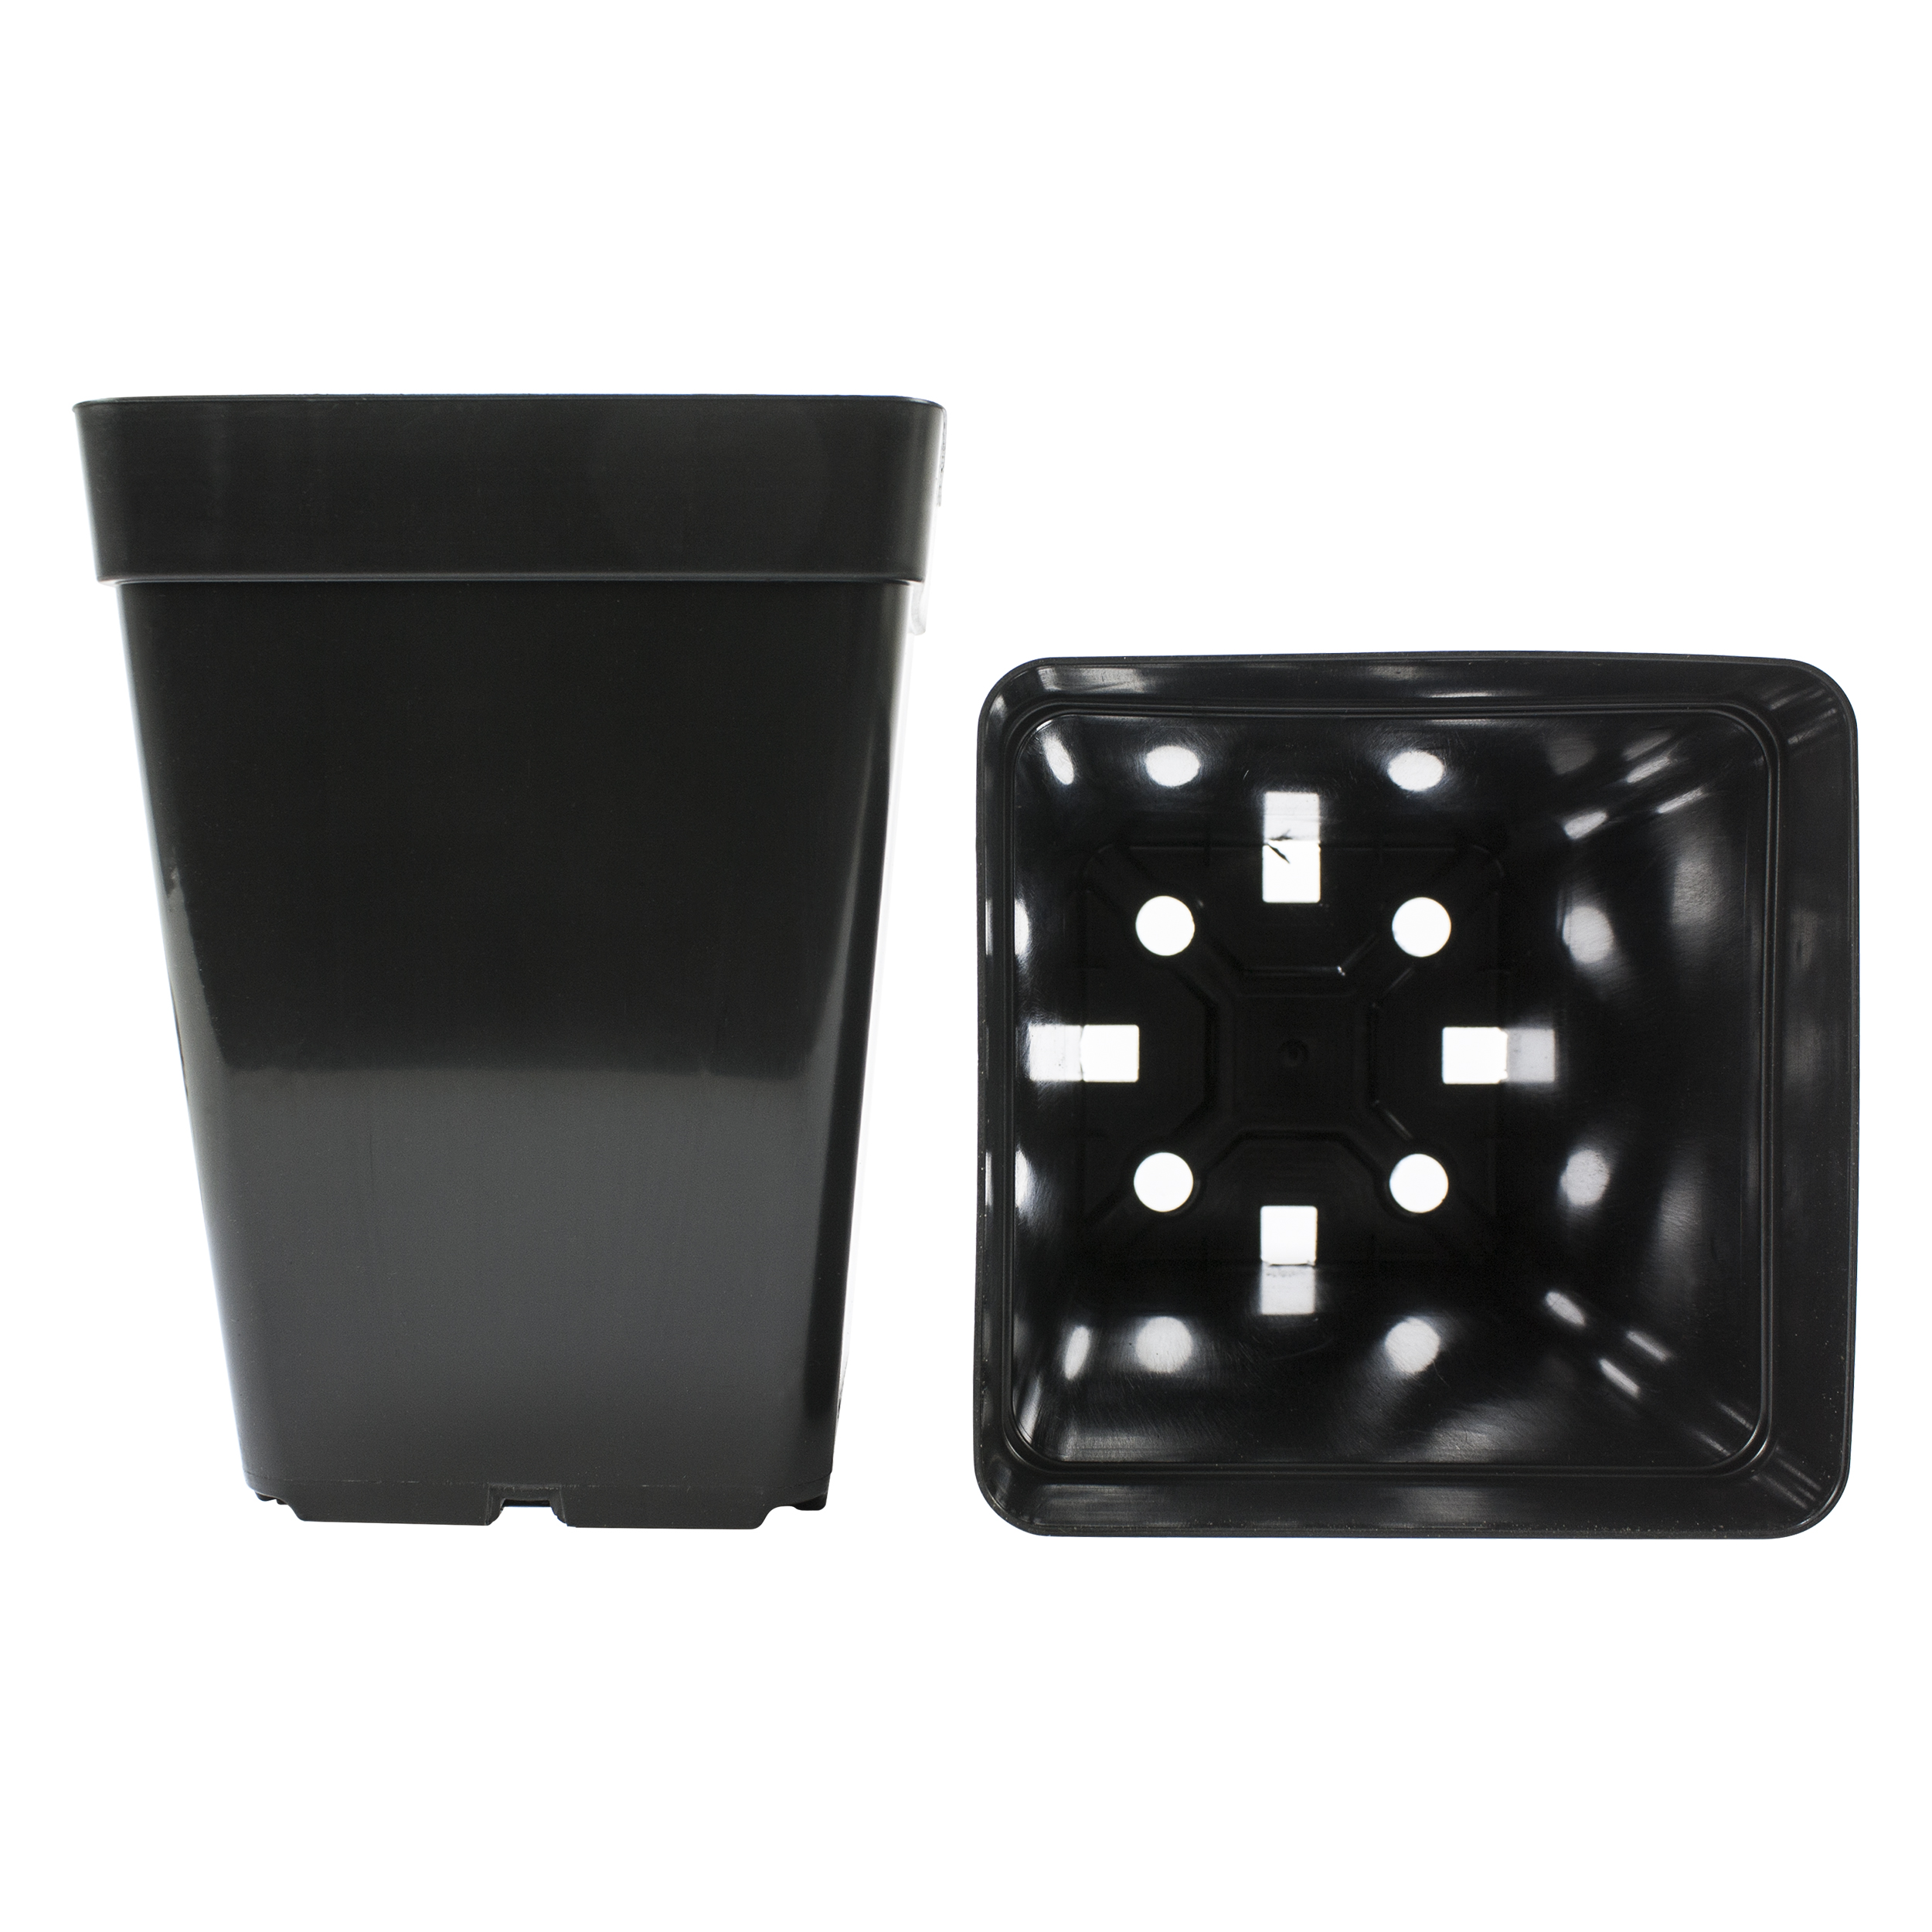 wasserstandsanzeiger 9cm hydrokultur blumentopf wasser. Black Bedroom Furniture Sets. Home Design Ideas